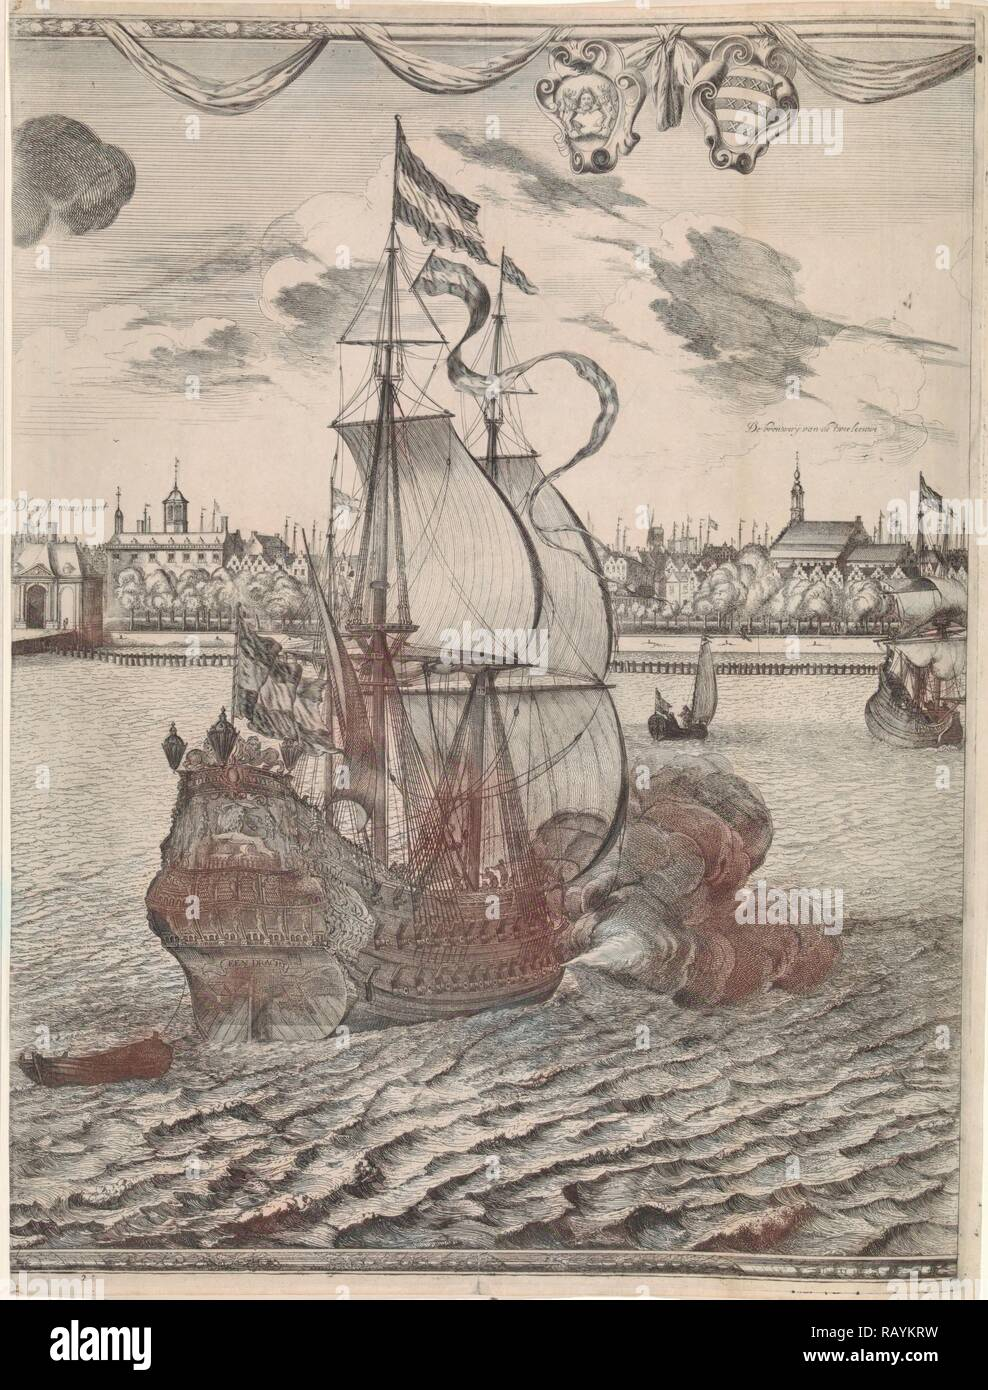 Panorama of Rotterdam, The Netherlands, print maker: attributed to Joost van Geel, Jan Houwens I, 1665. Reimagined - Stock Image